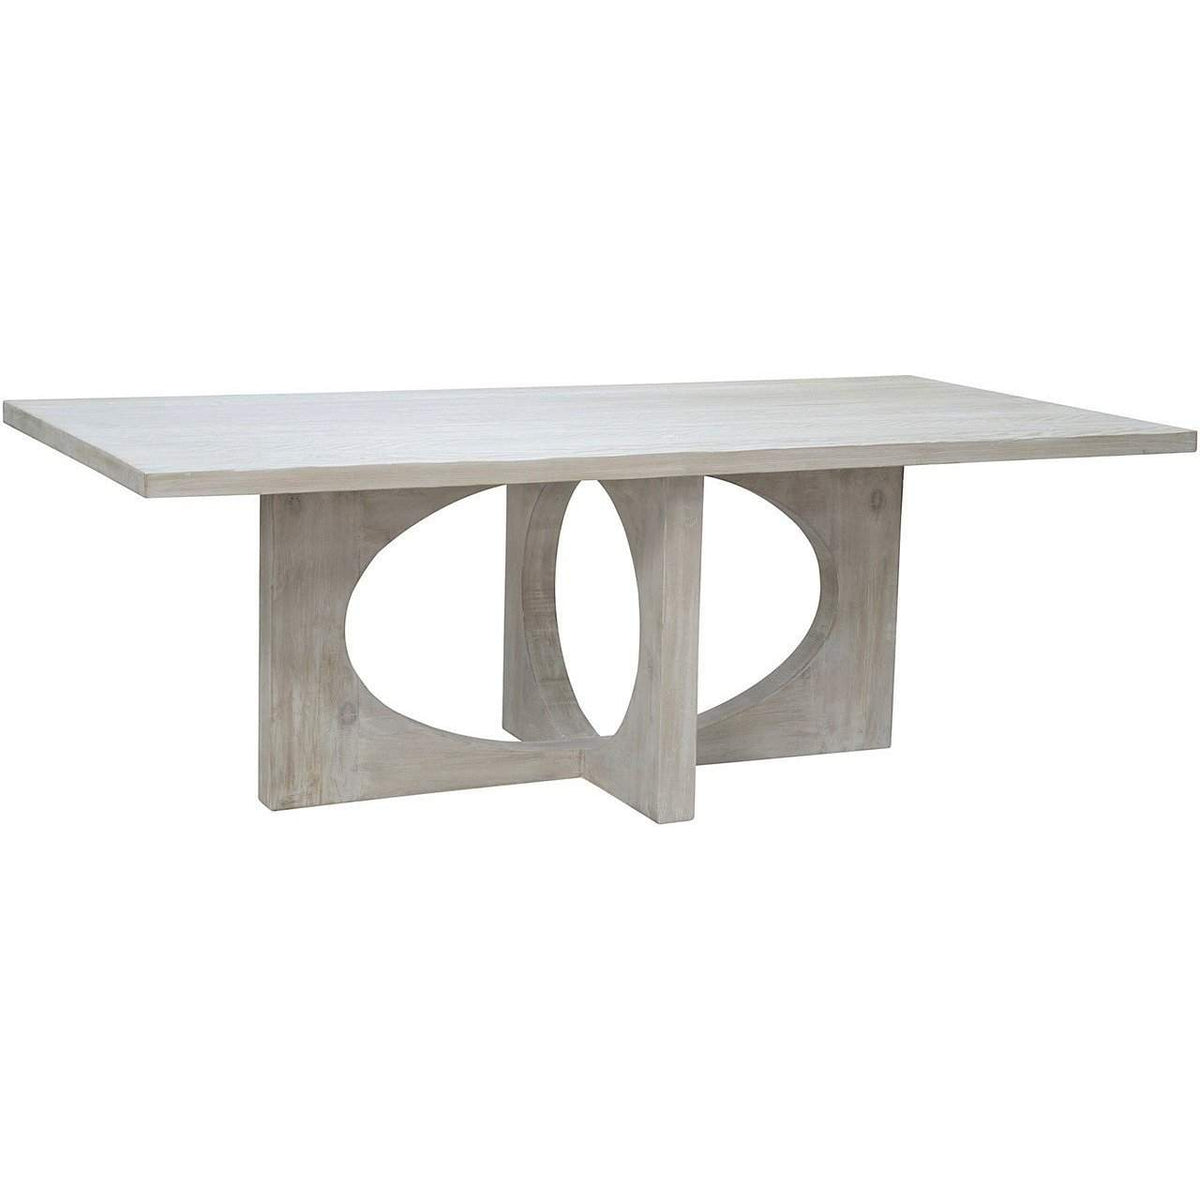 CFC Furniture Buttercup Dining Table-CFC Furniture-Blue Hand Home